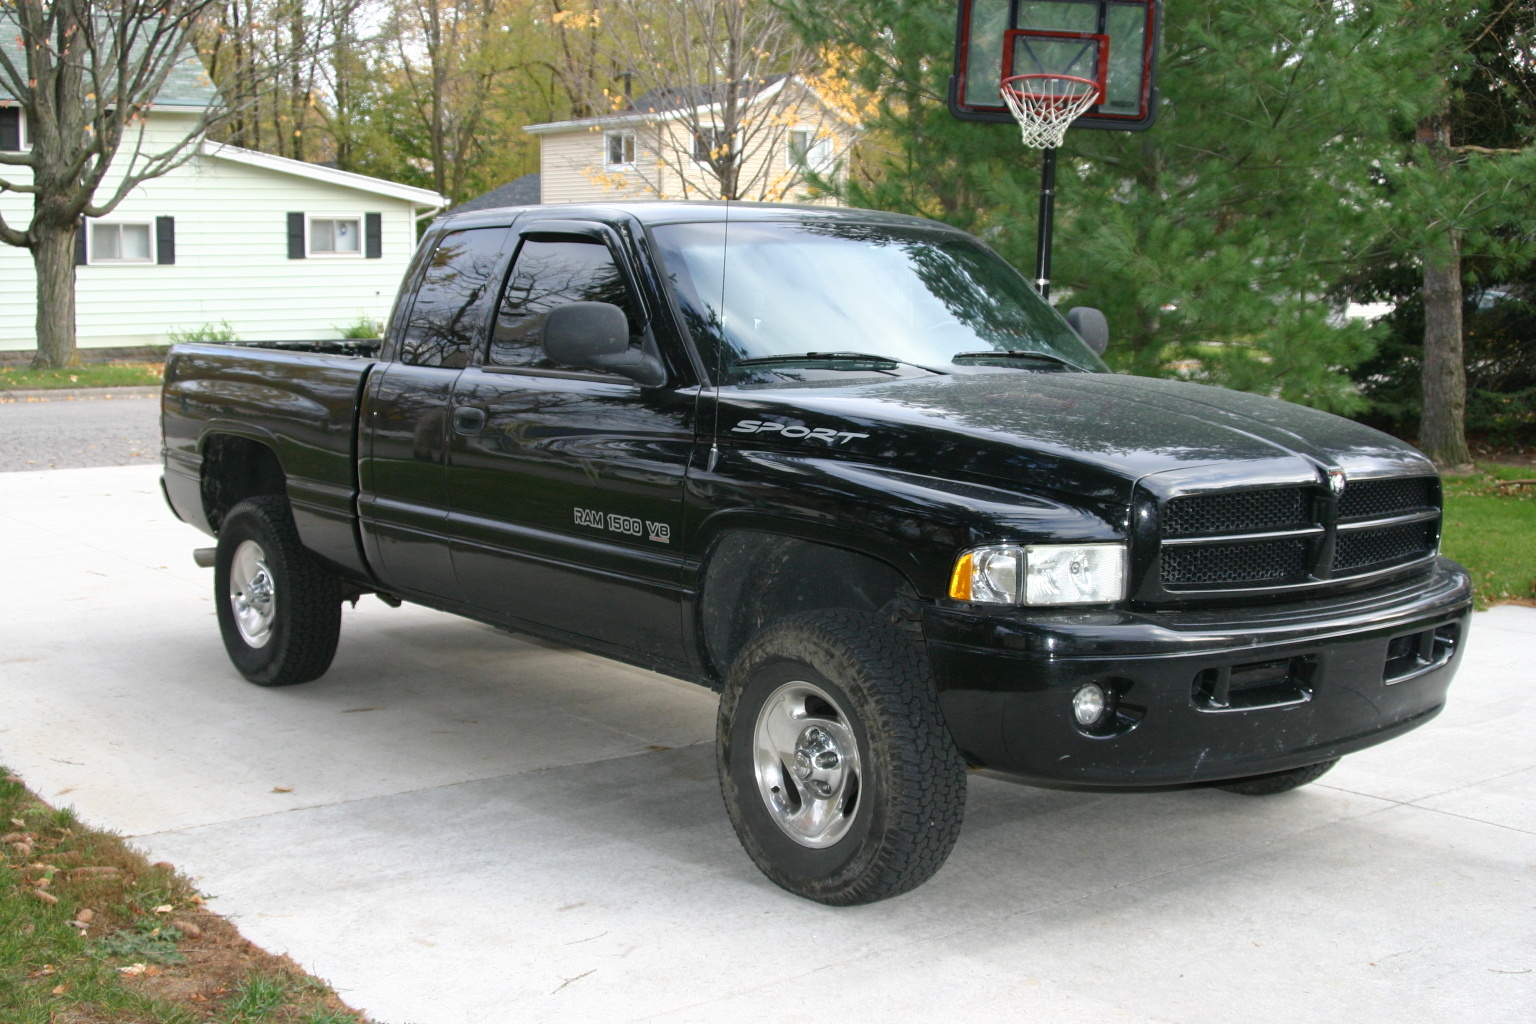 Dodge Ram Pickup Dr St Wd Extended Cab Sb Pic X on 1997 Dodge Ram 2500 Vacuum Diagram